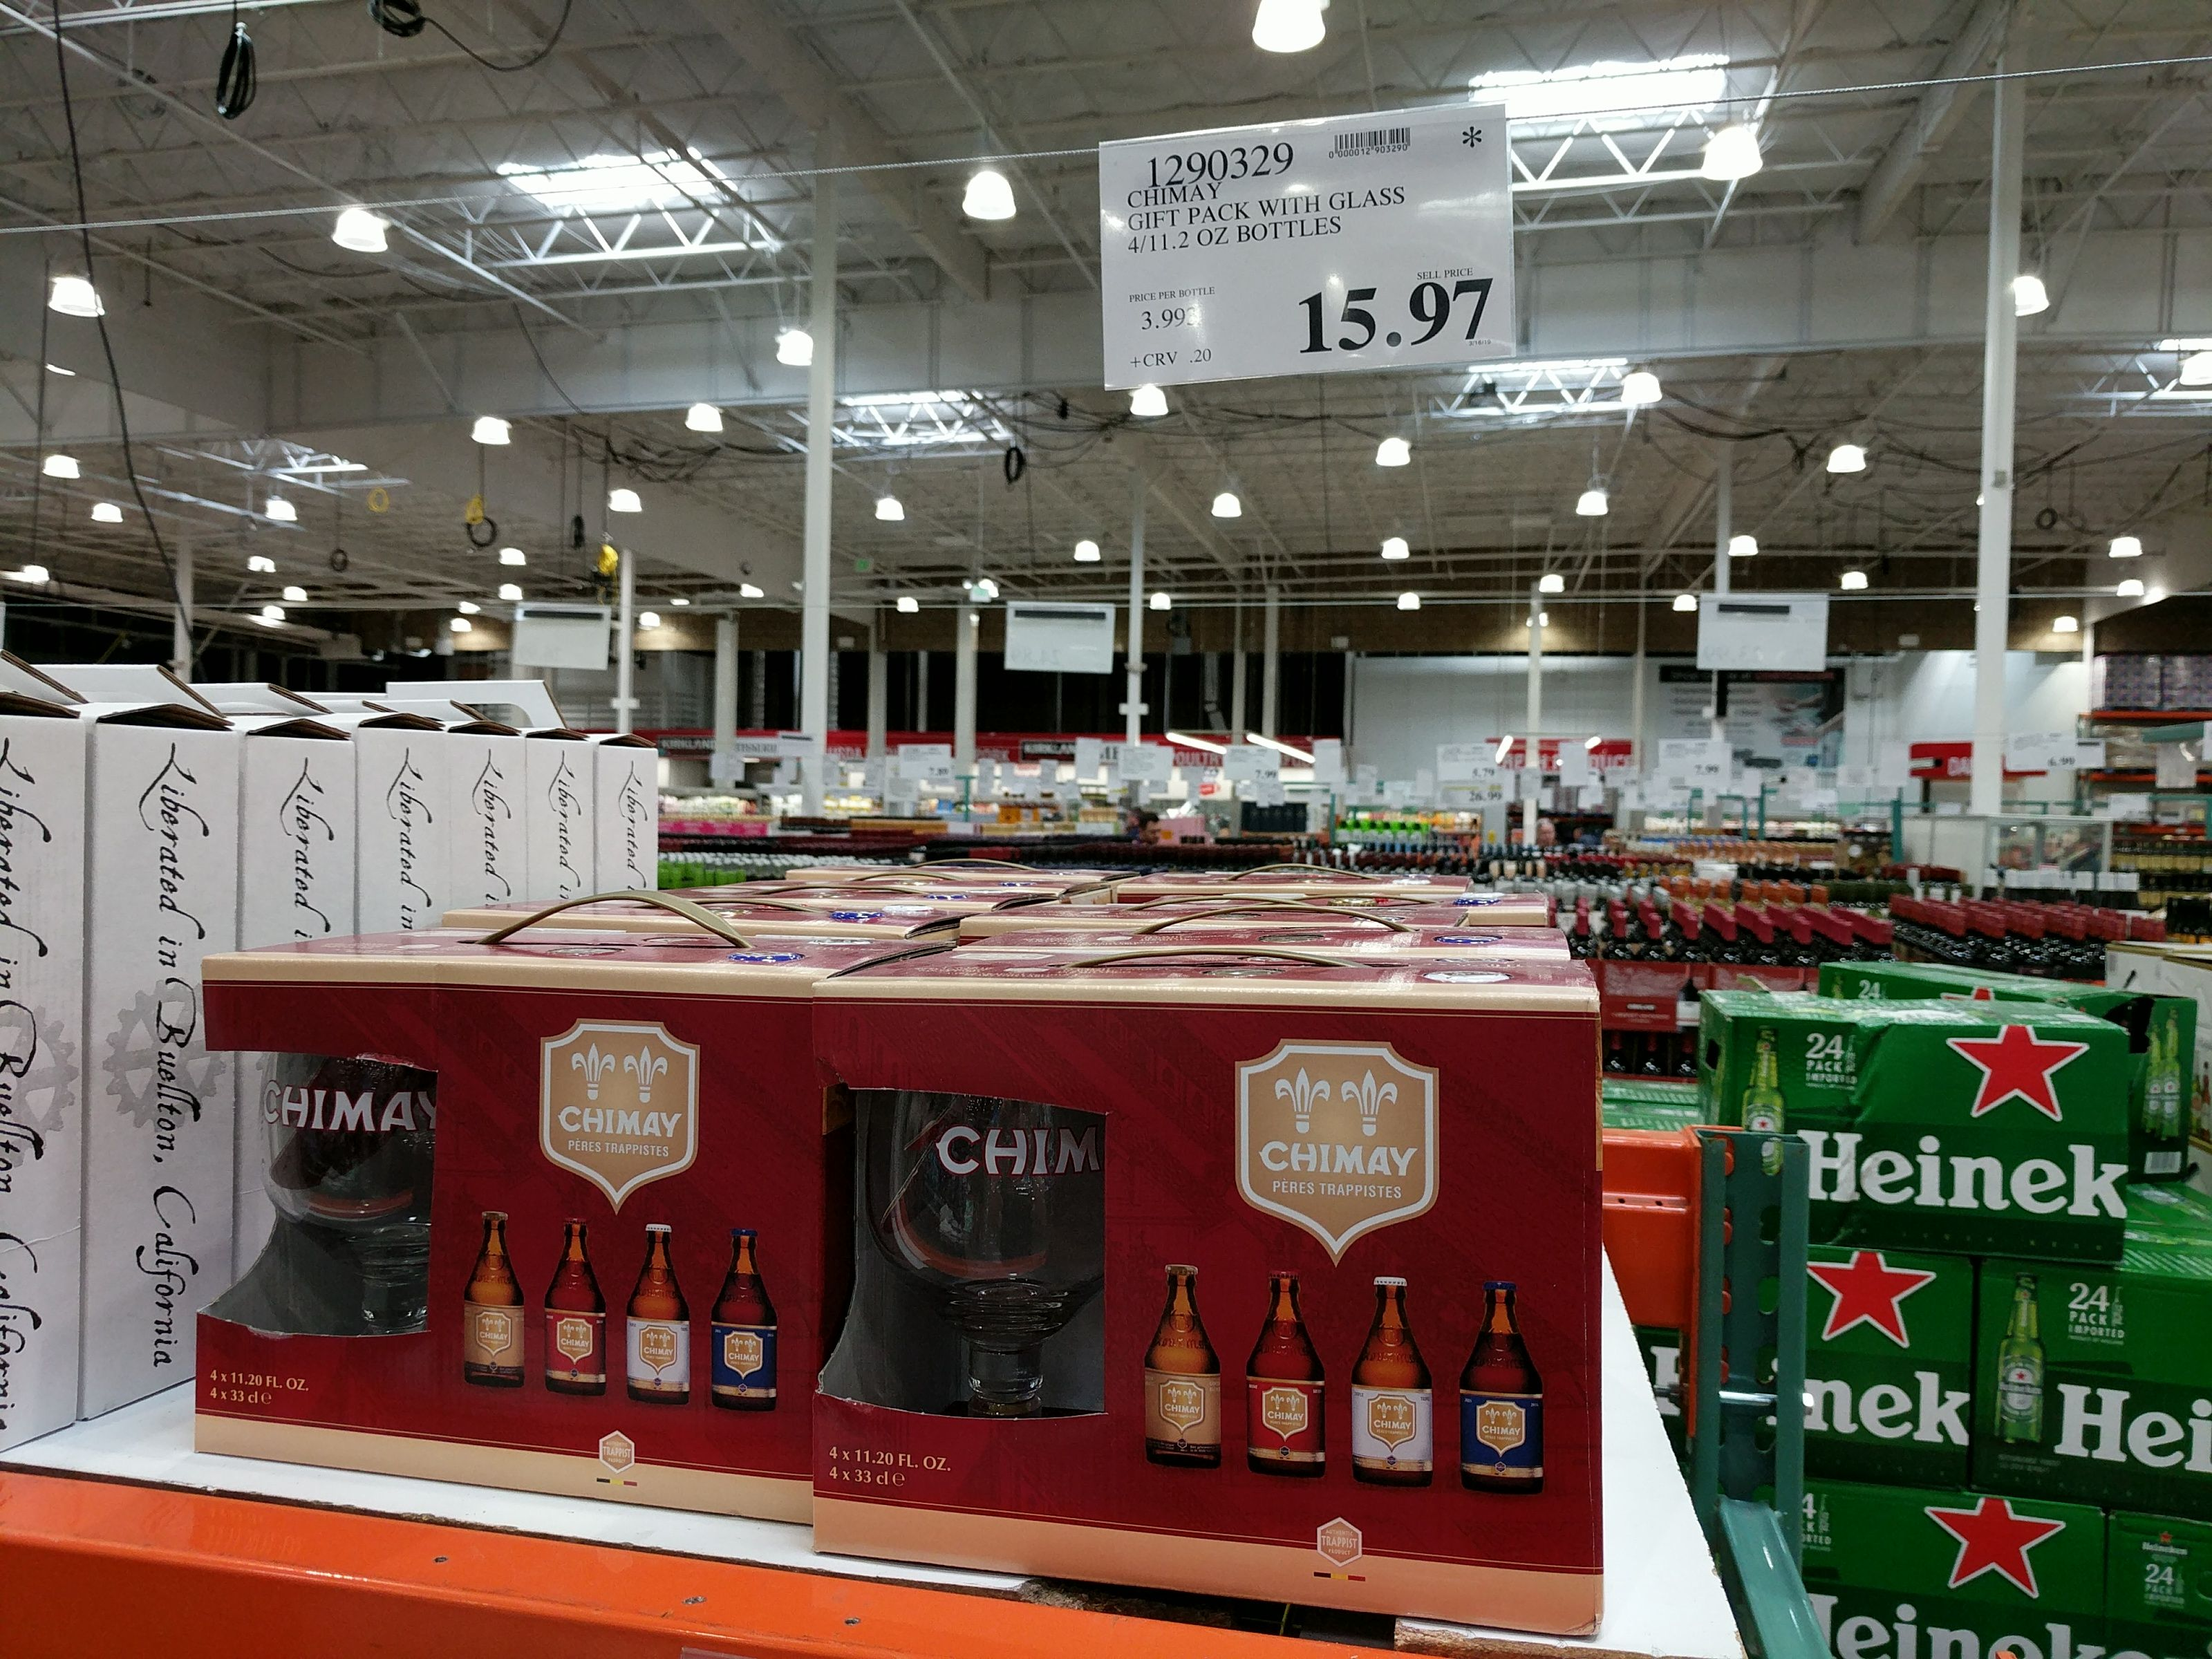 Chimay Gift Pack With Glass 15 97 Costco Clearance Malt Beer Gift Packs Trappist Beer